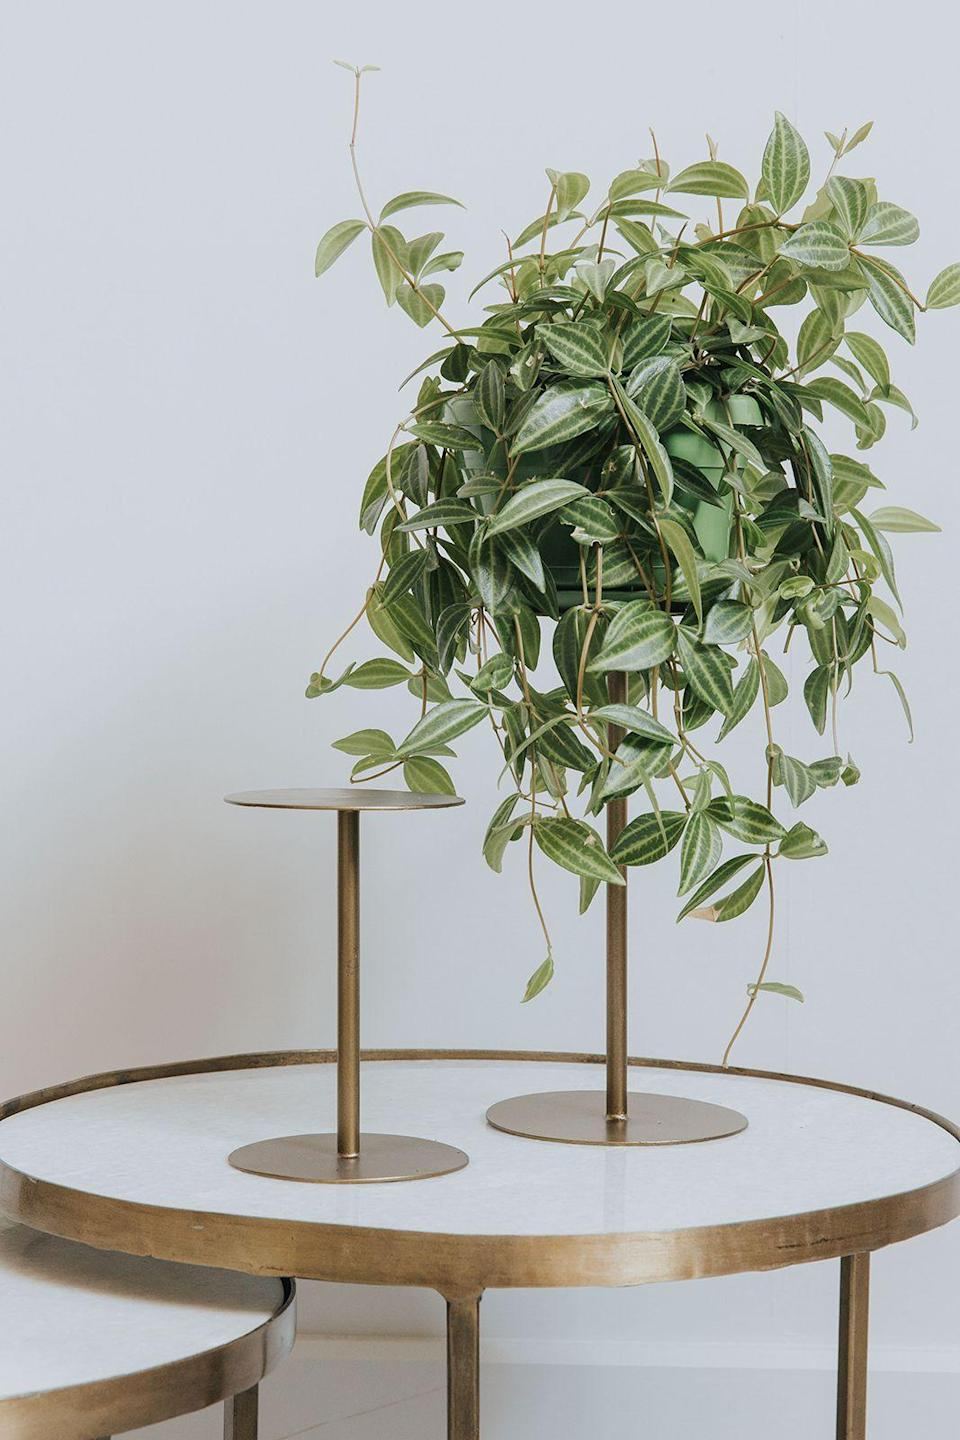 """<p><strong>Stand tall</strong></p><p>Elevate your prized plants with the help of a brass plant stand or two. More than just a pretty thing, they'll keep foliage happy and healthy as well as create visual interest by using them to add height to your display.</p><p>From £9.50, <a href=""""http://www.roseandgrey.co.uk/brass-plant-stand-small"""" rel=""""nofollow noopener"""" target=""""_blank"""" data-ylk=""""slk:roseandgrey.co.uk"""" class=""""link rapid-noclick-resp"""">roseandgrey.co.uk</a></p>"""